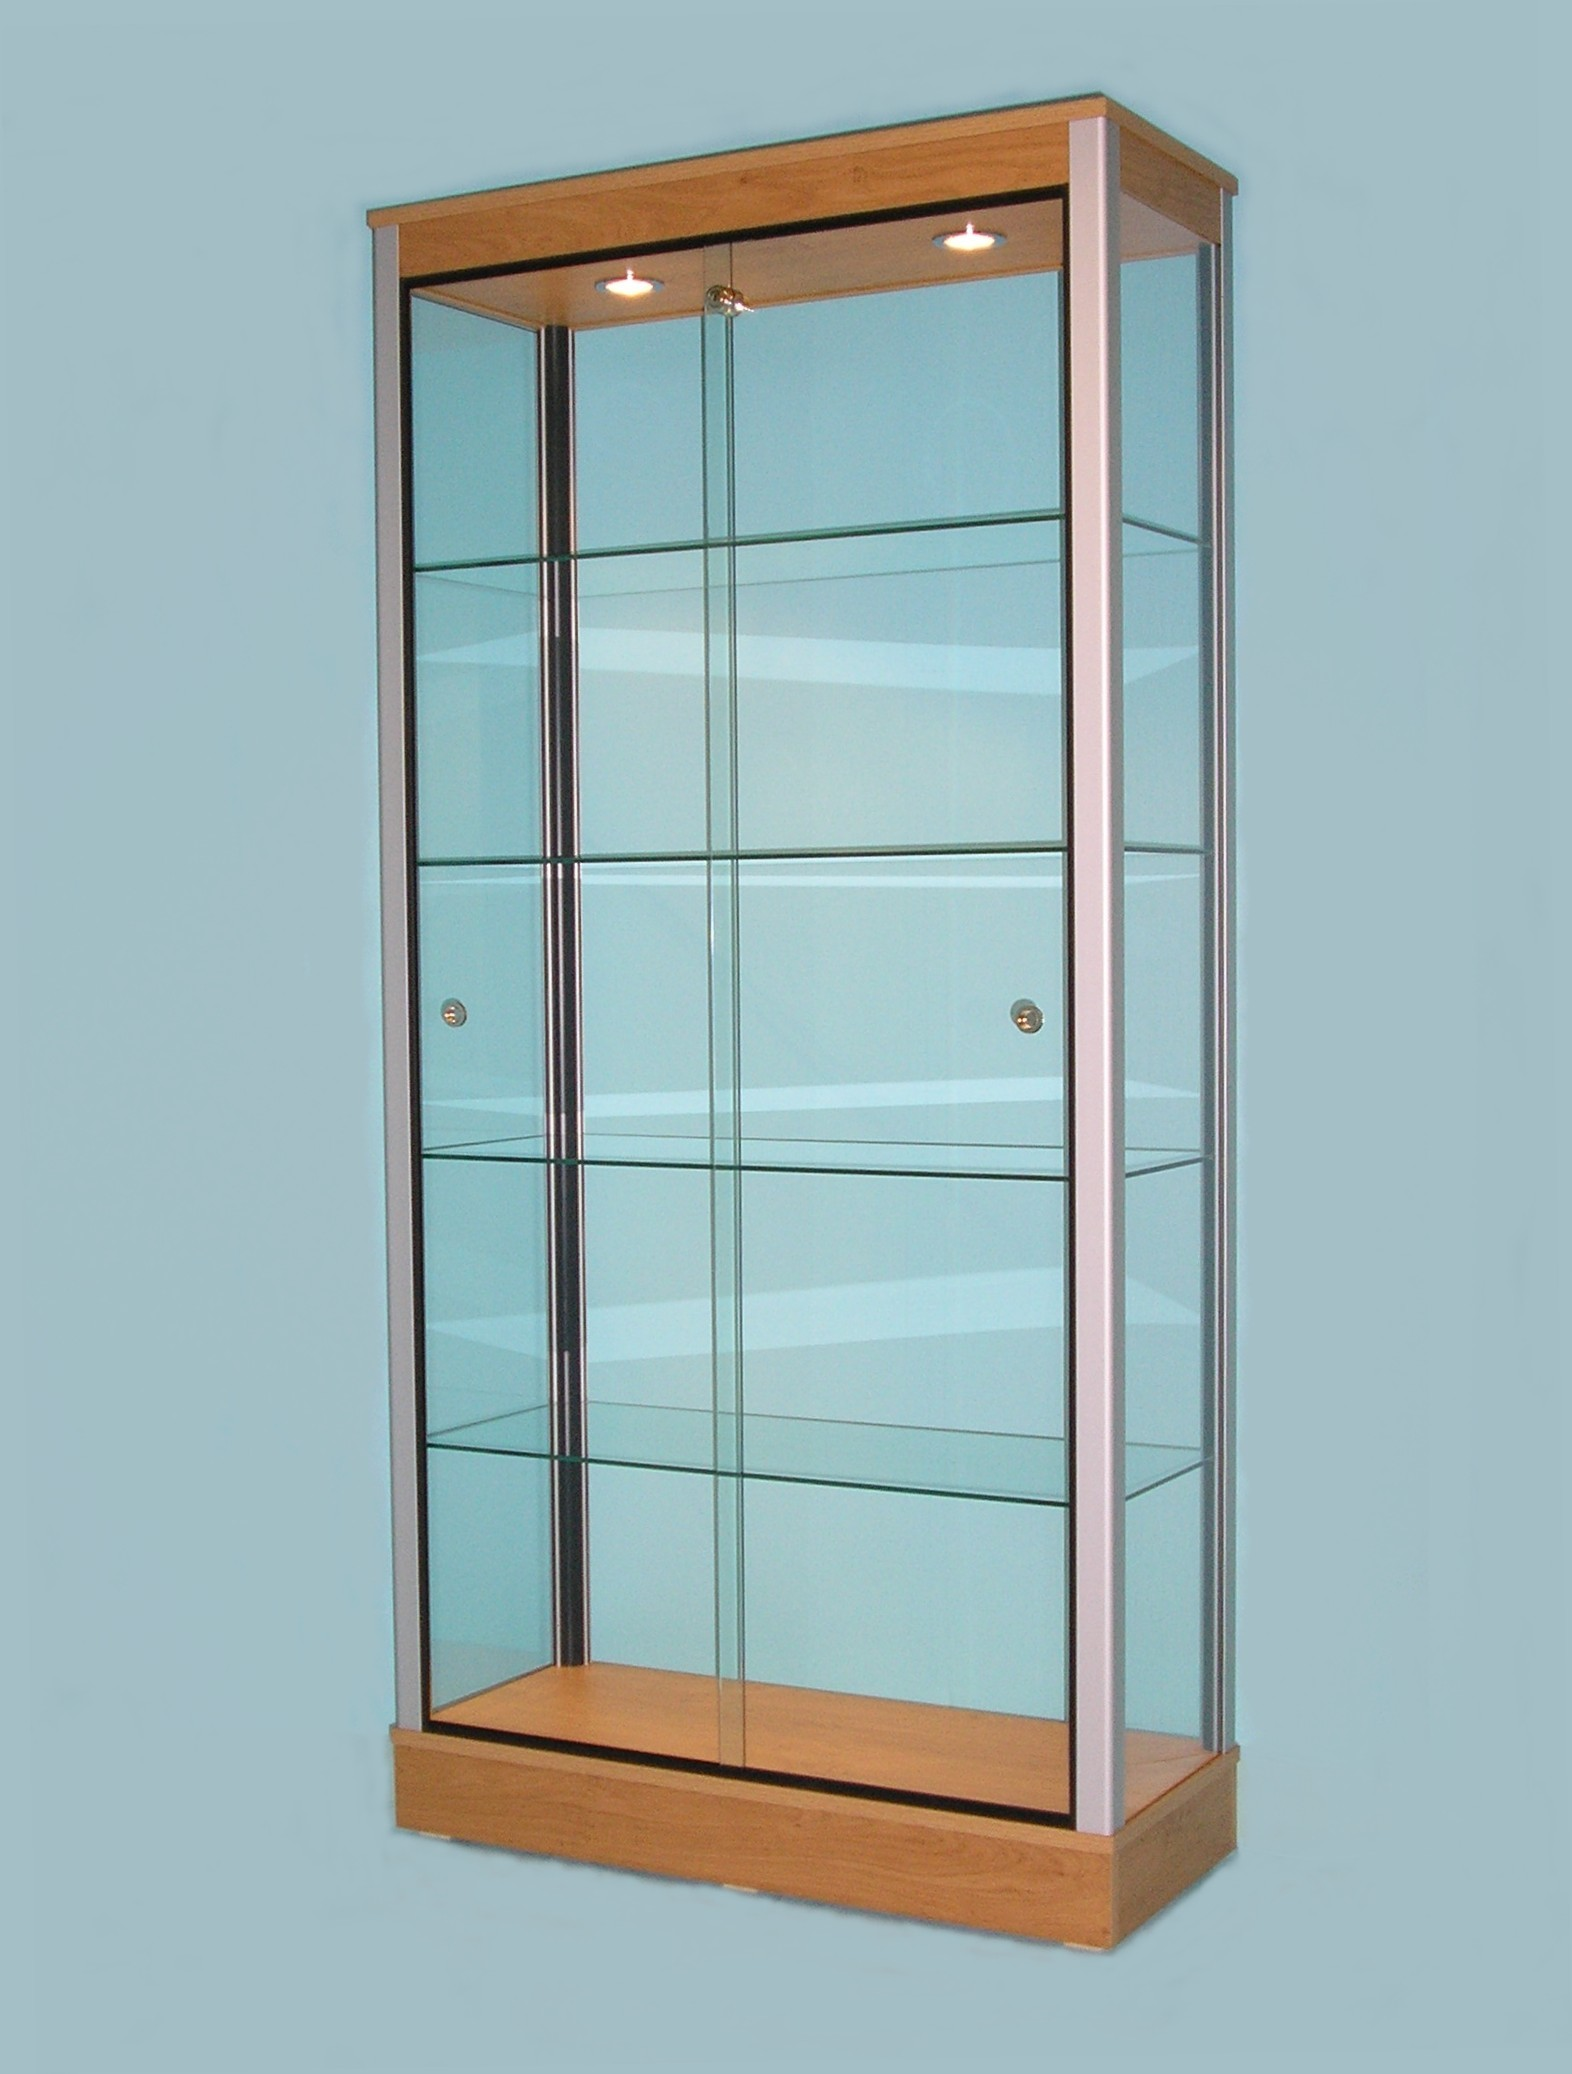 Ikea Detolf Glass Cabinet Review Nazarm Com